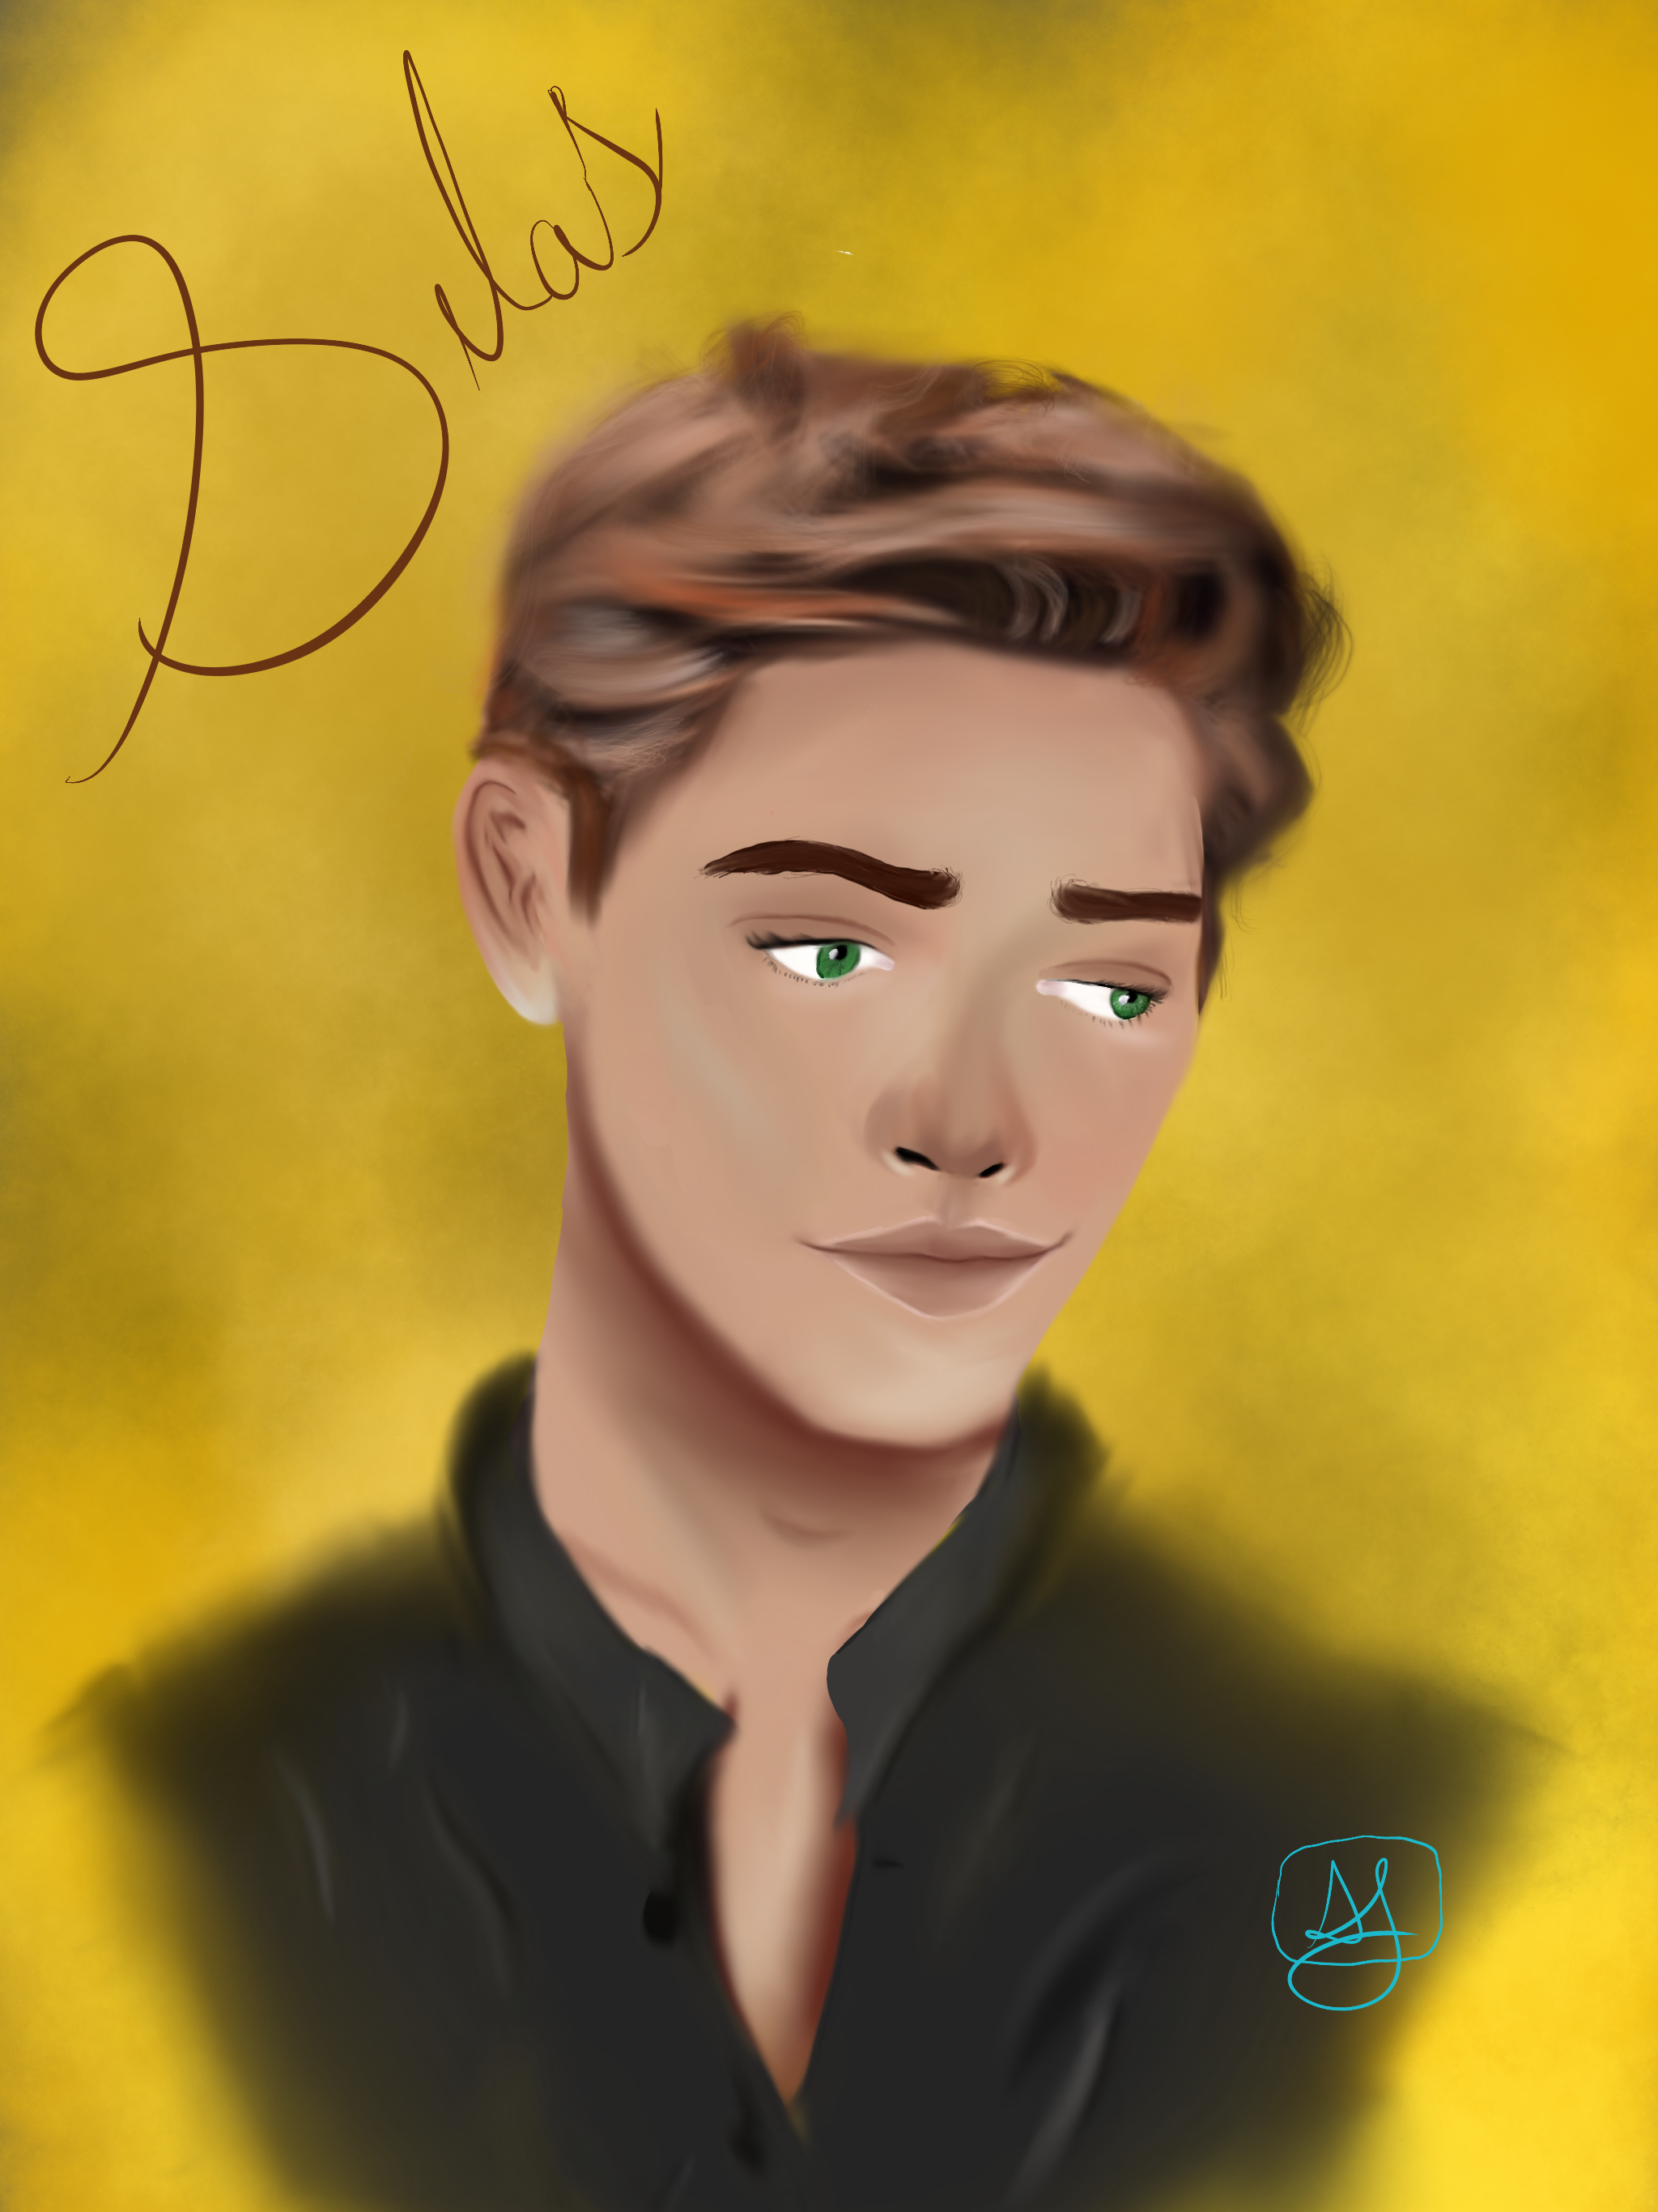 Silas from Golden by K.M. Robinson